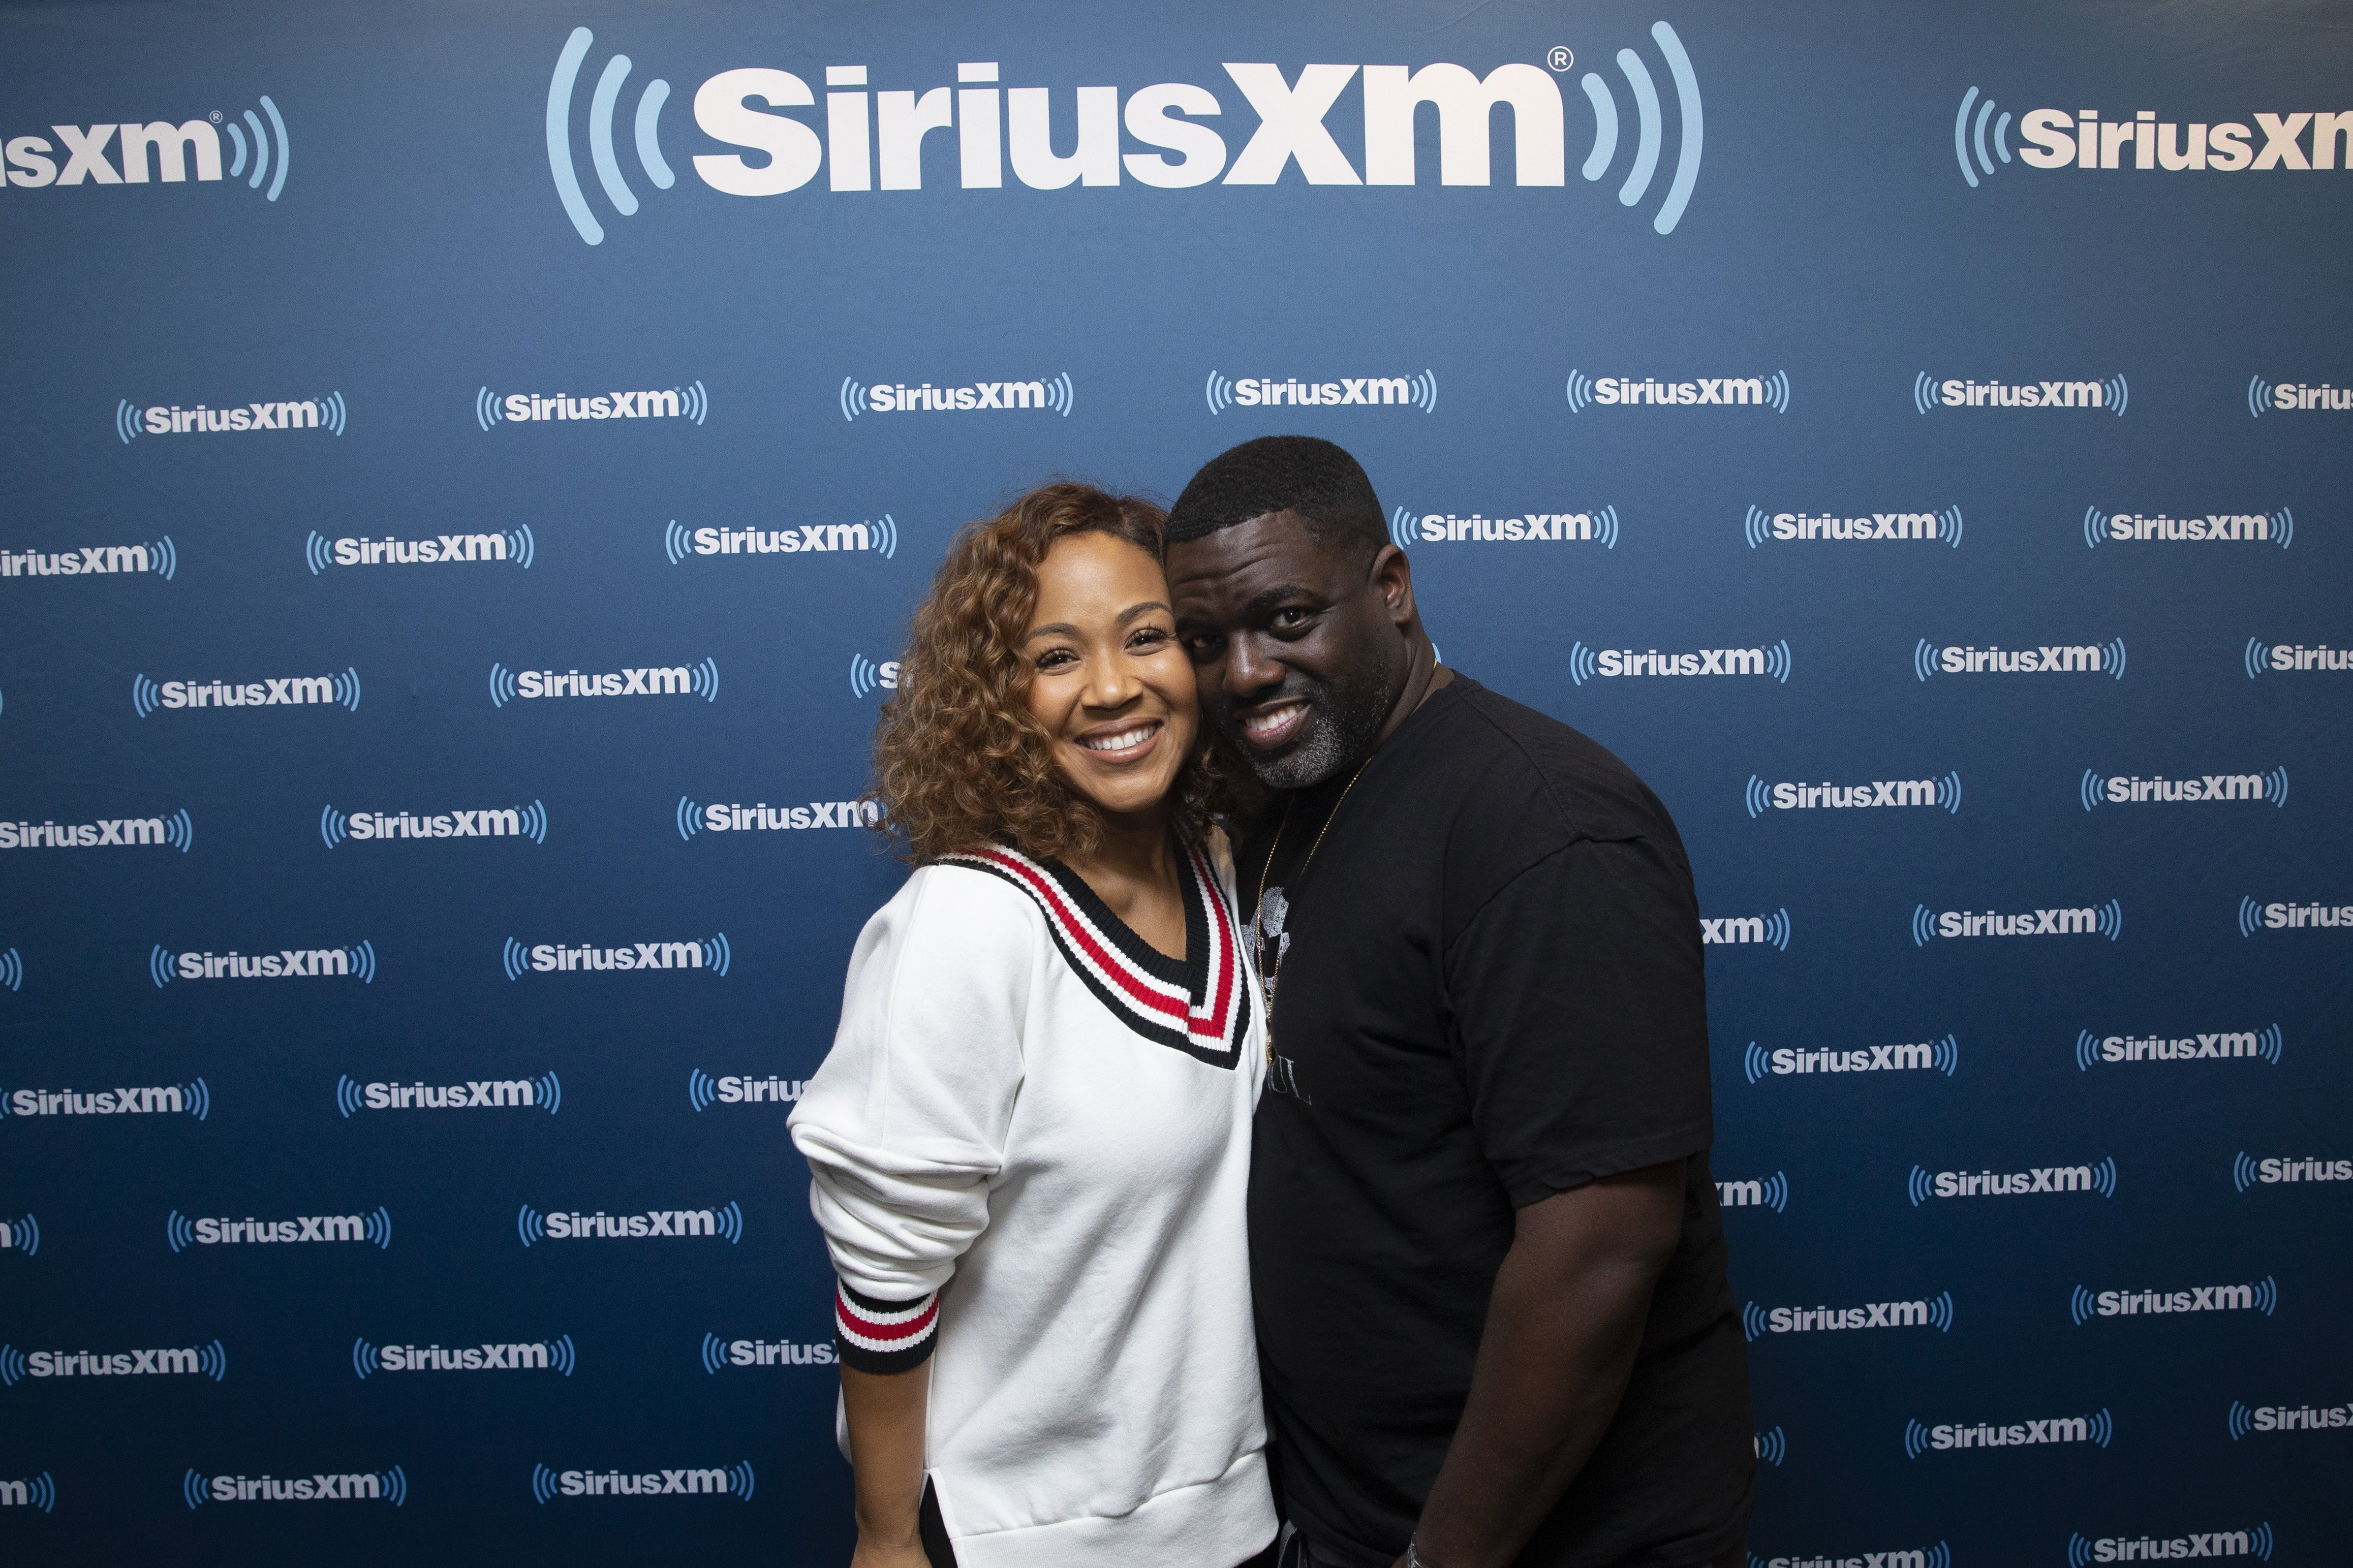 Erica & Warryn Campbell at SiriusXM Radio in Washington, DC. on Nov. 1, 2018 | Photo: Getty Images